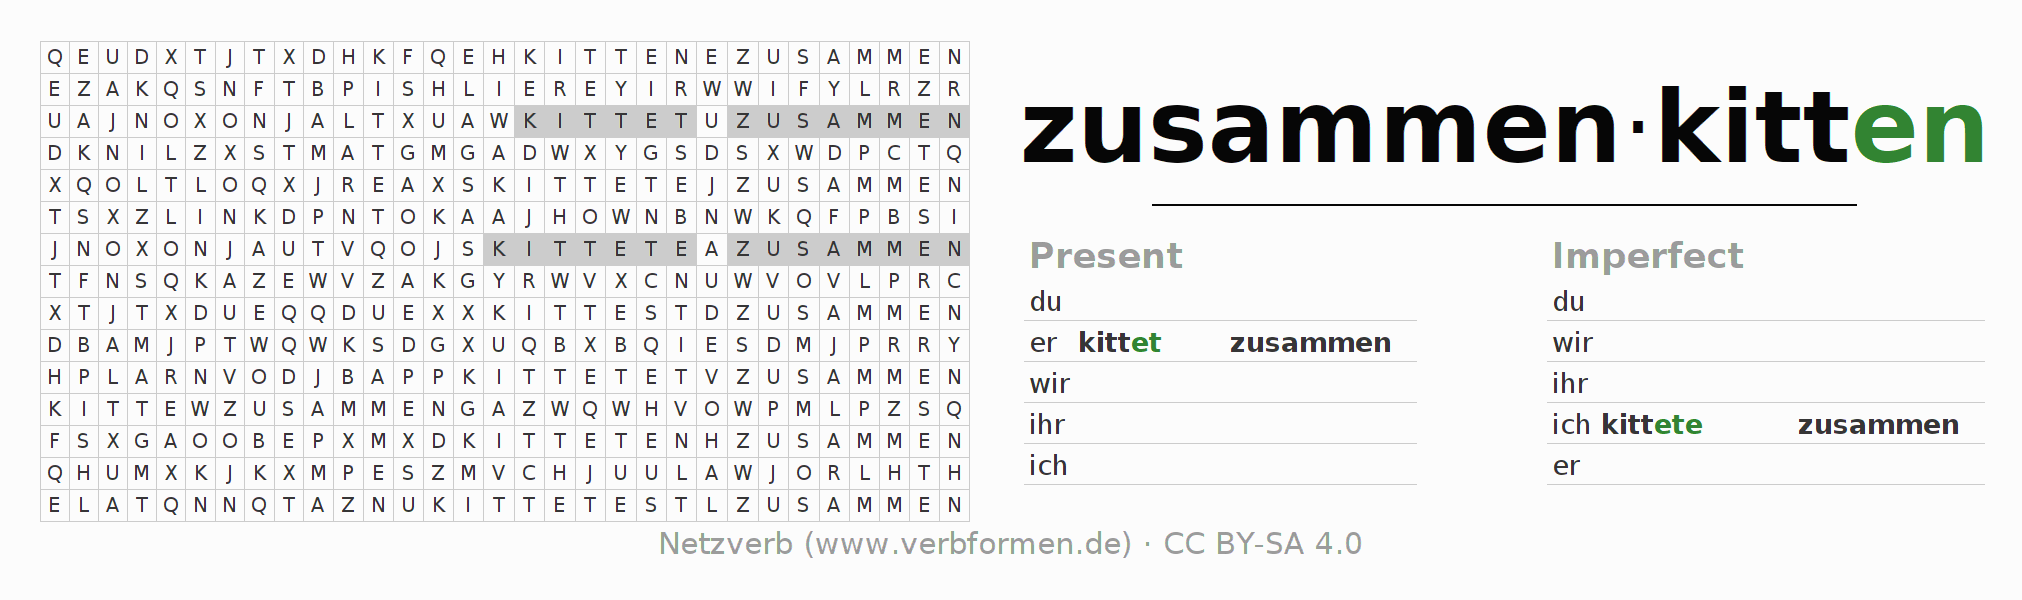 Word search puzzle for the conjugation of the verb zusammenkitten